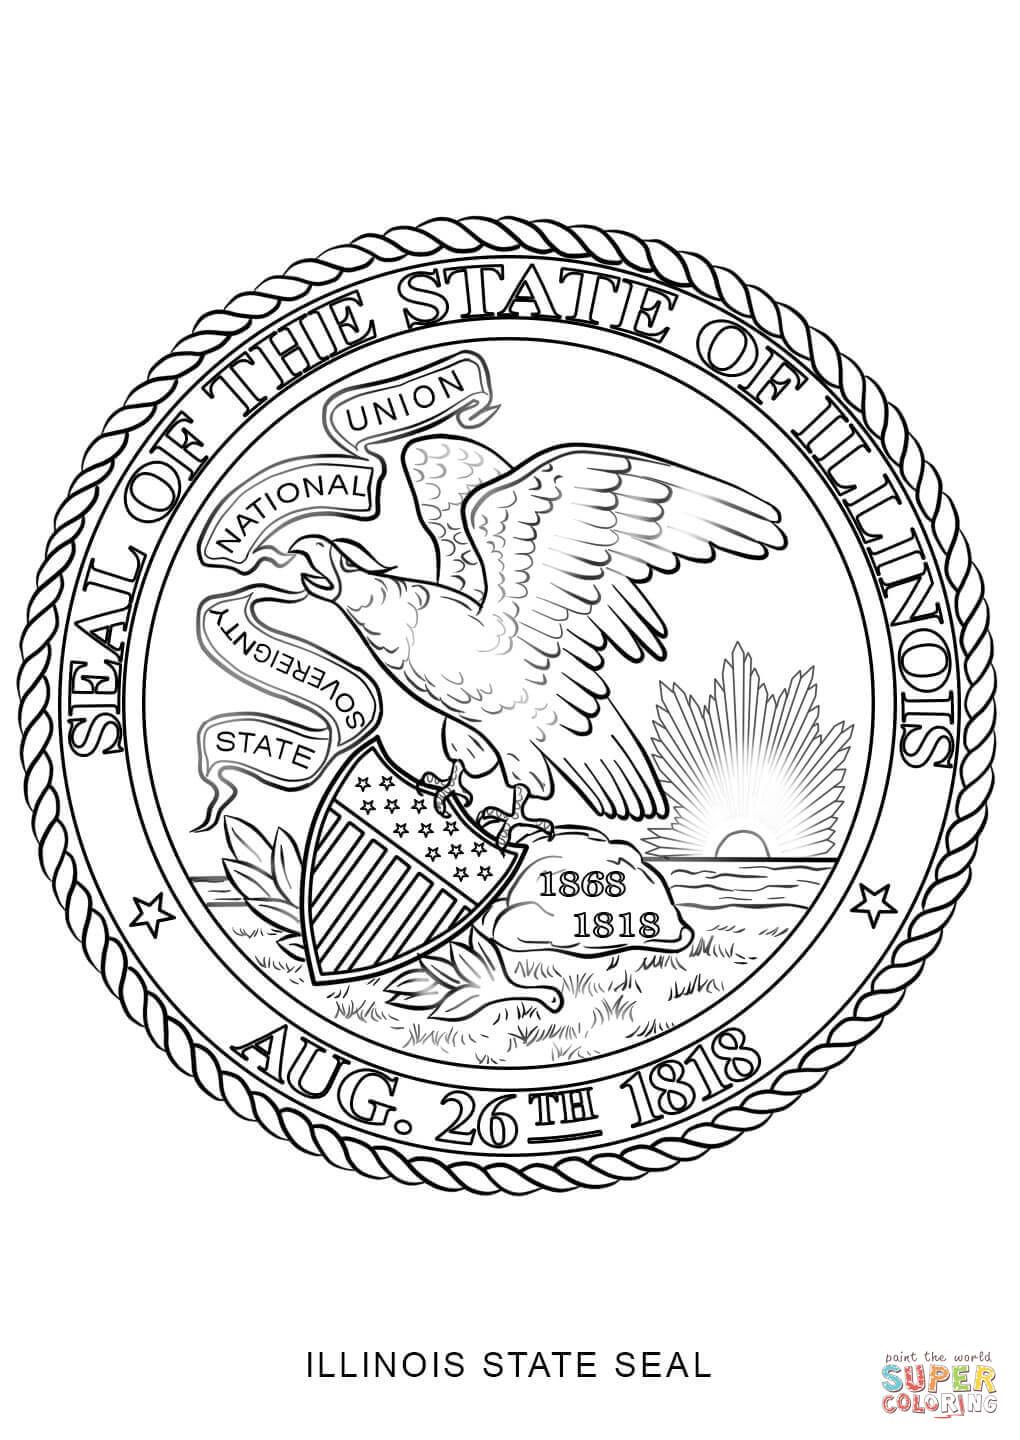 92 Click The West Virginia State Seal Coloring Pages United States Coloring Pages Click Flag Coloring Pages Coloring Pages Illinois State